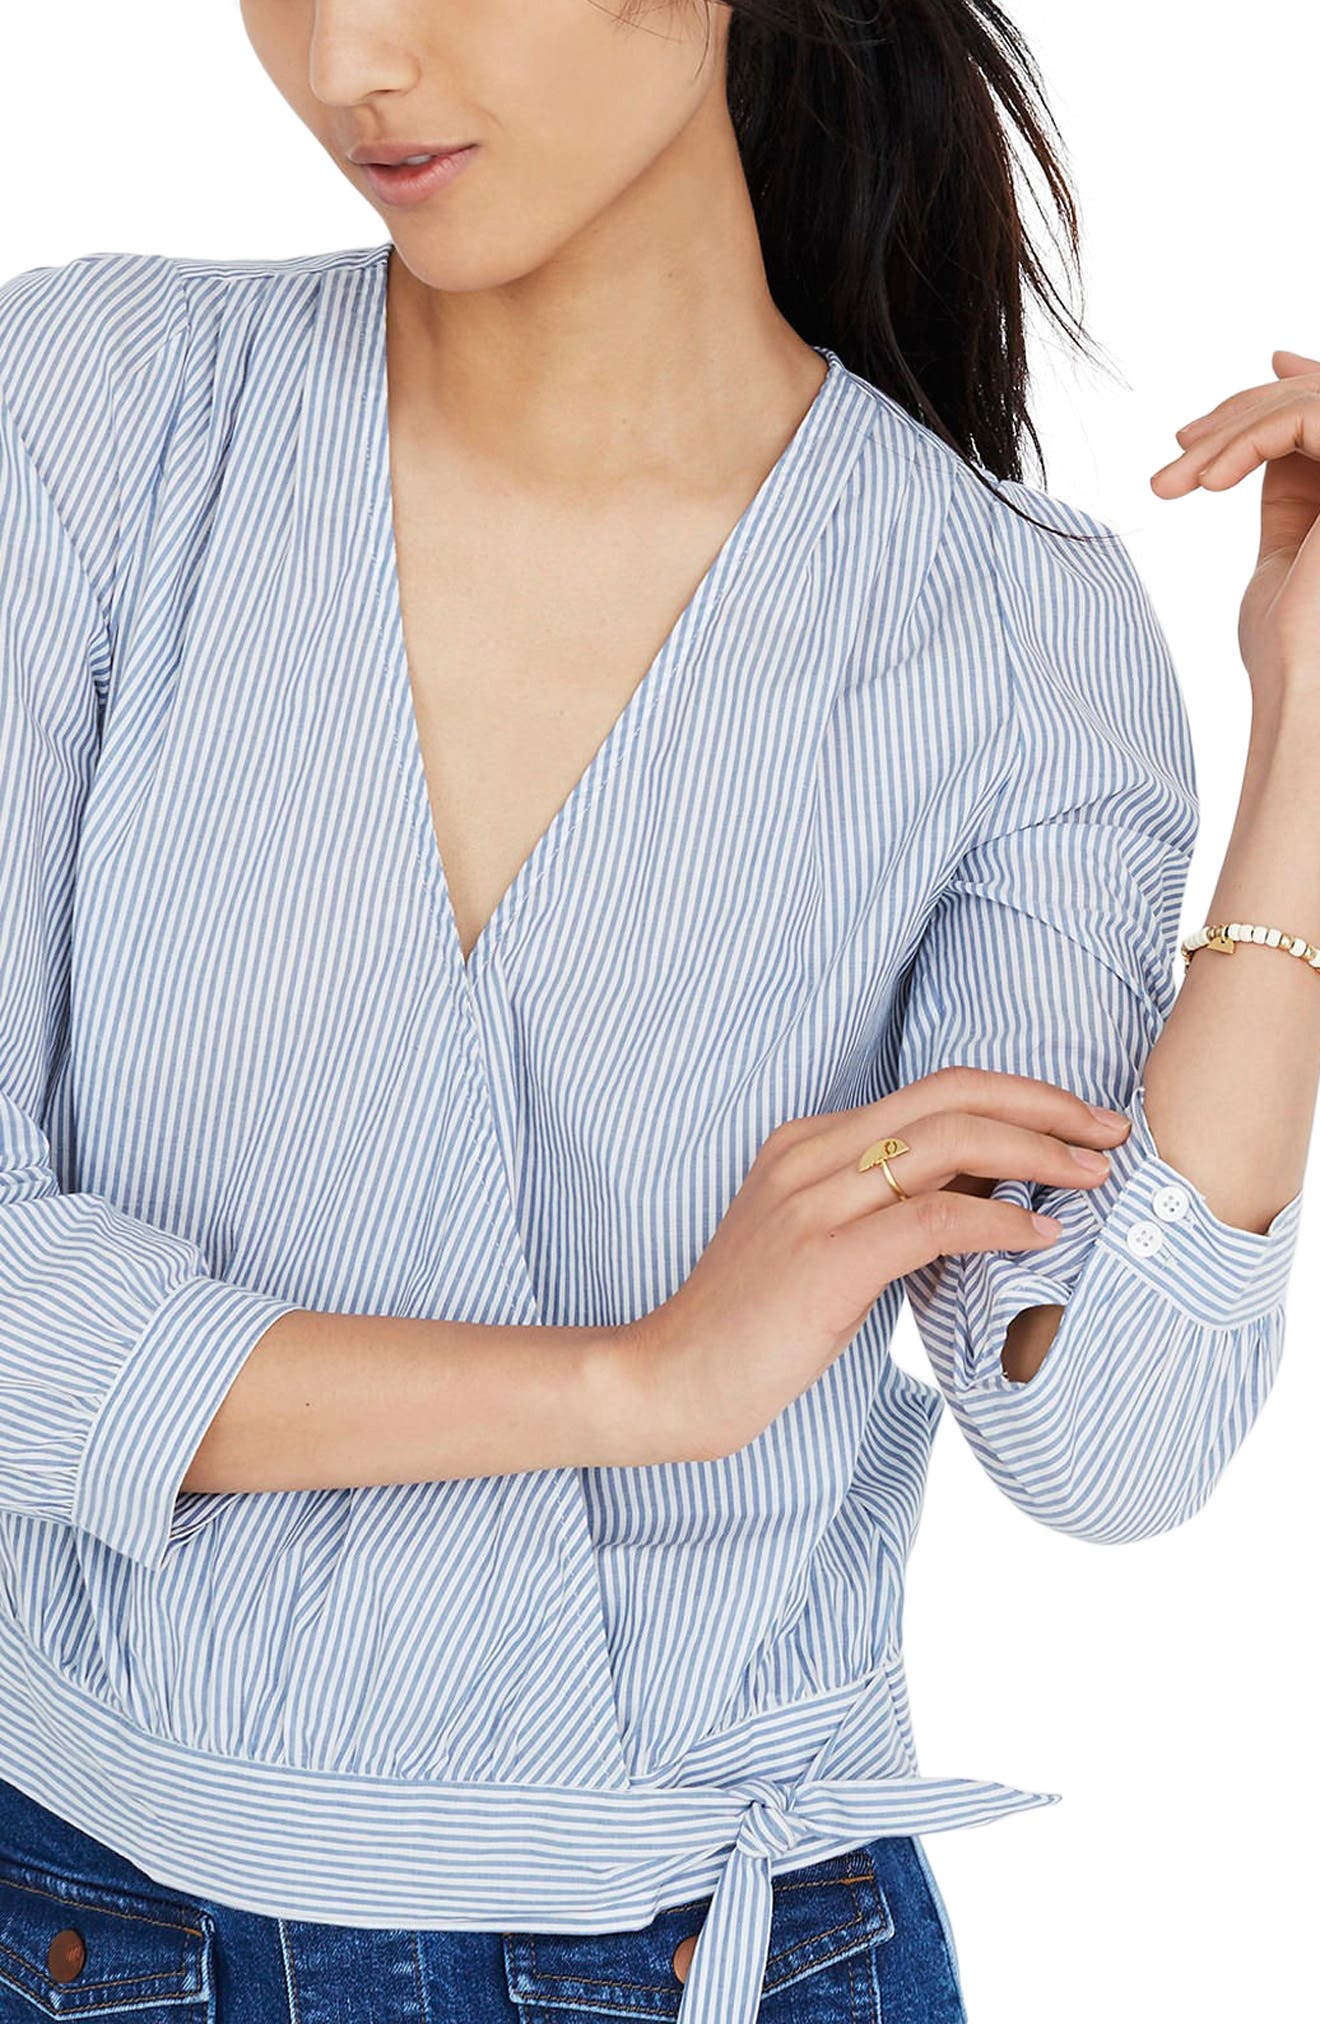 Albury Stripe Wrap Top,                             Main thumbnail 1, color,                             400